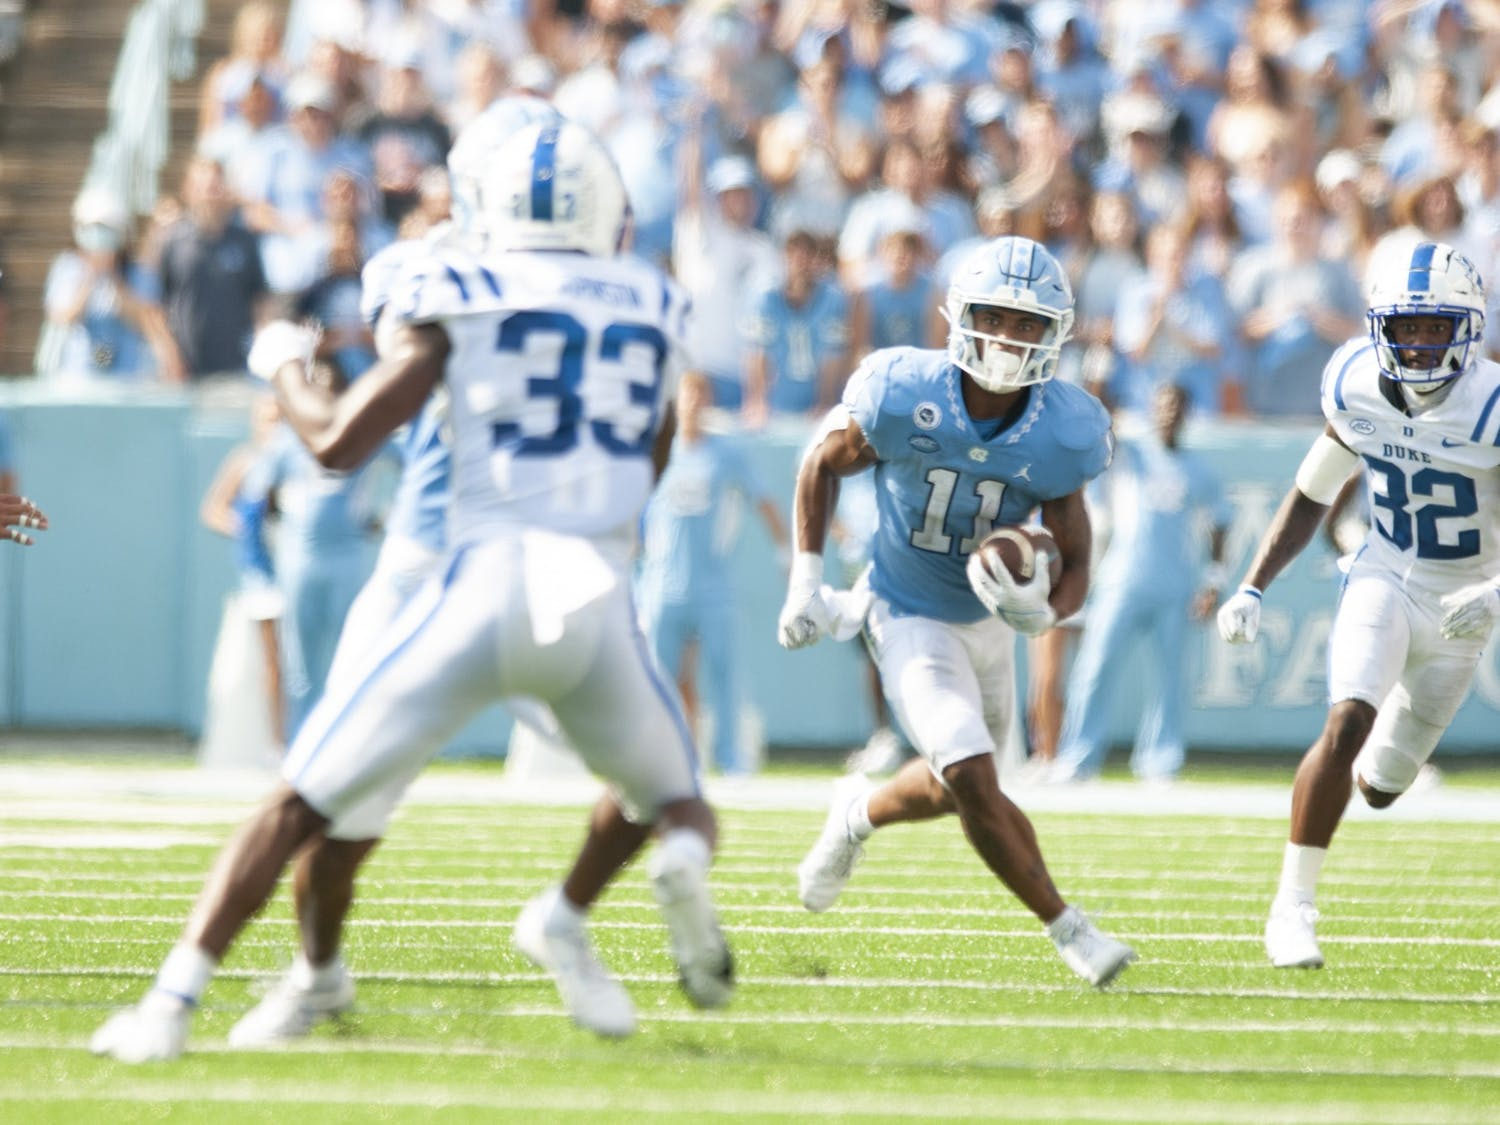 Sophomore wide receiver Josh Downs (11) receives a 63-yard pass from quarterback Sam Howell (7) and runs up the field to score a touchdown, bringing the Tar Heels to a 38-7 lead over Duke. The Tar Heels defeated Duke 38-7 in Kenan Memorial Stadium on Oct. 2, 2021.